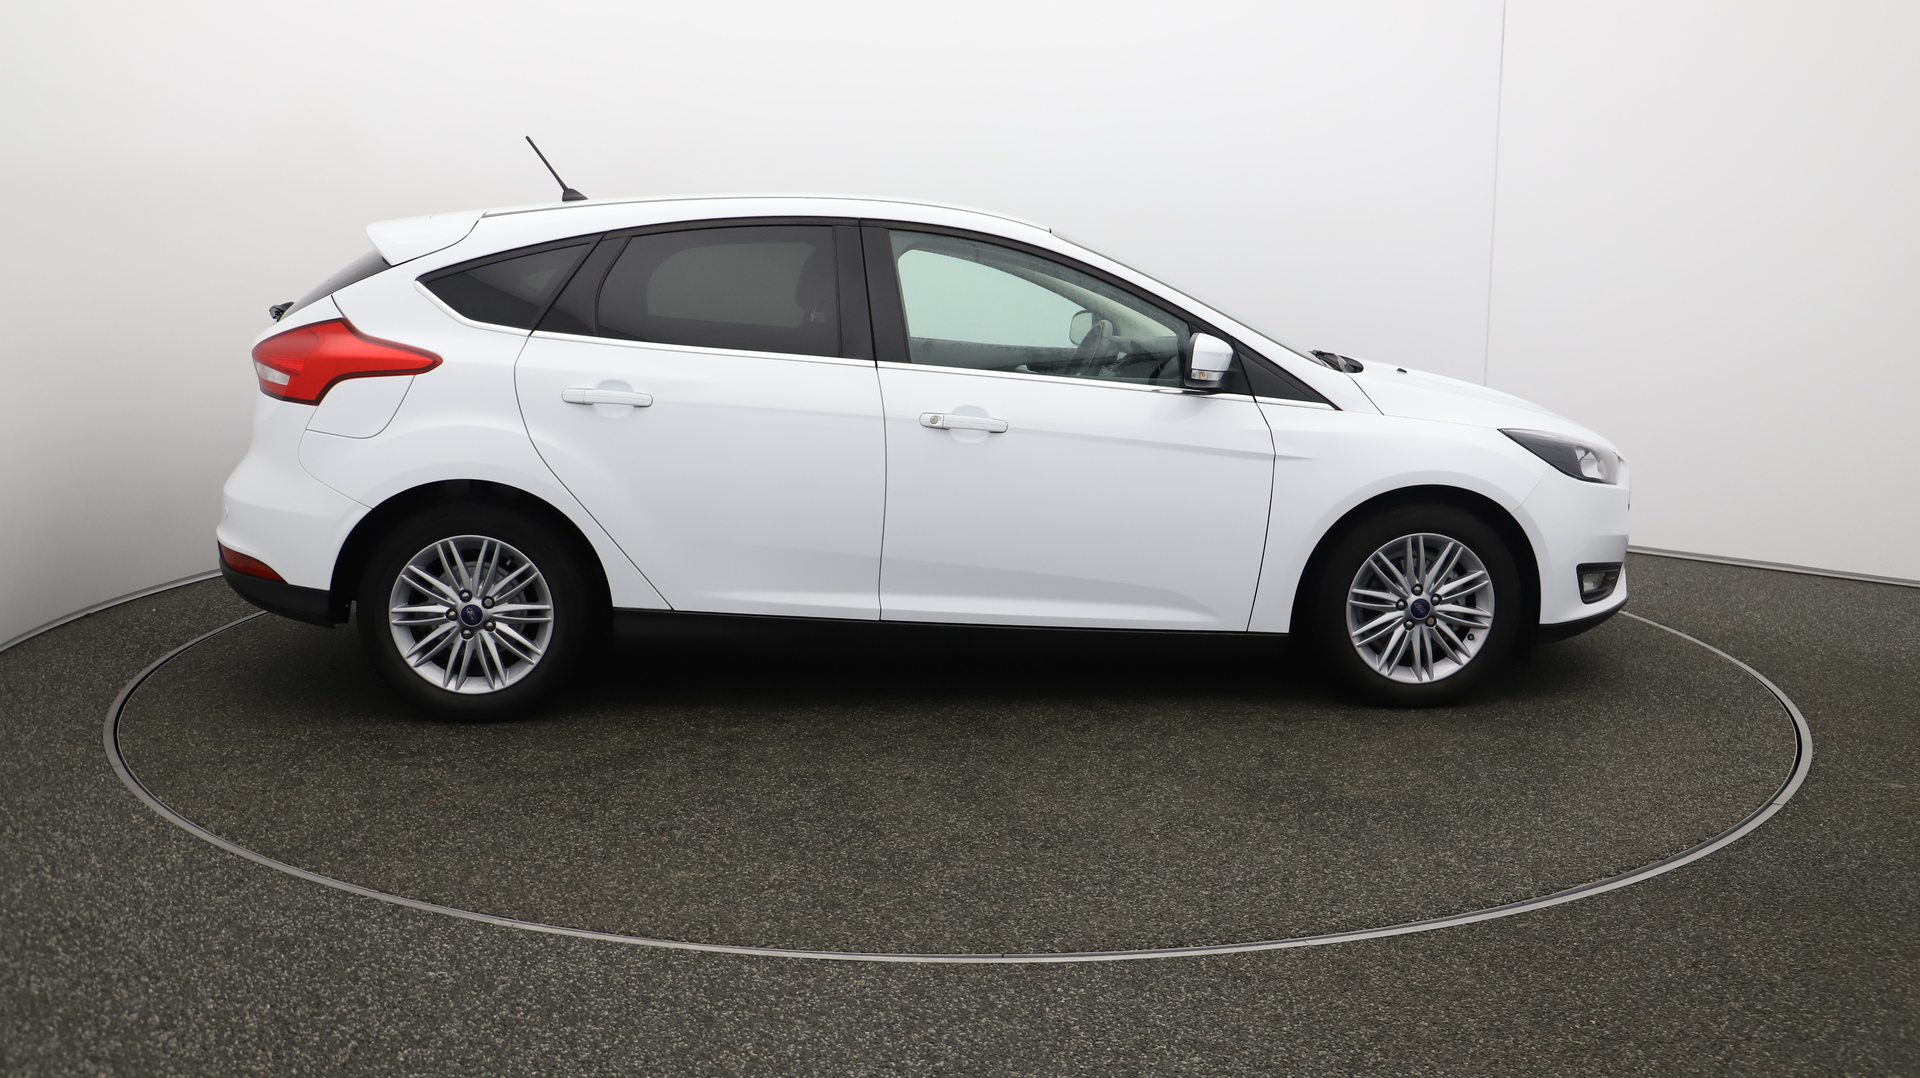 Ford Focus ZETEC EDITION Service History